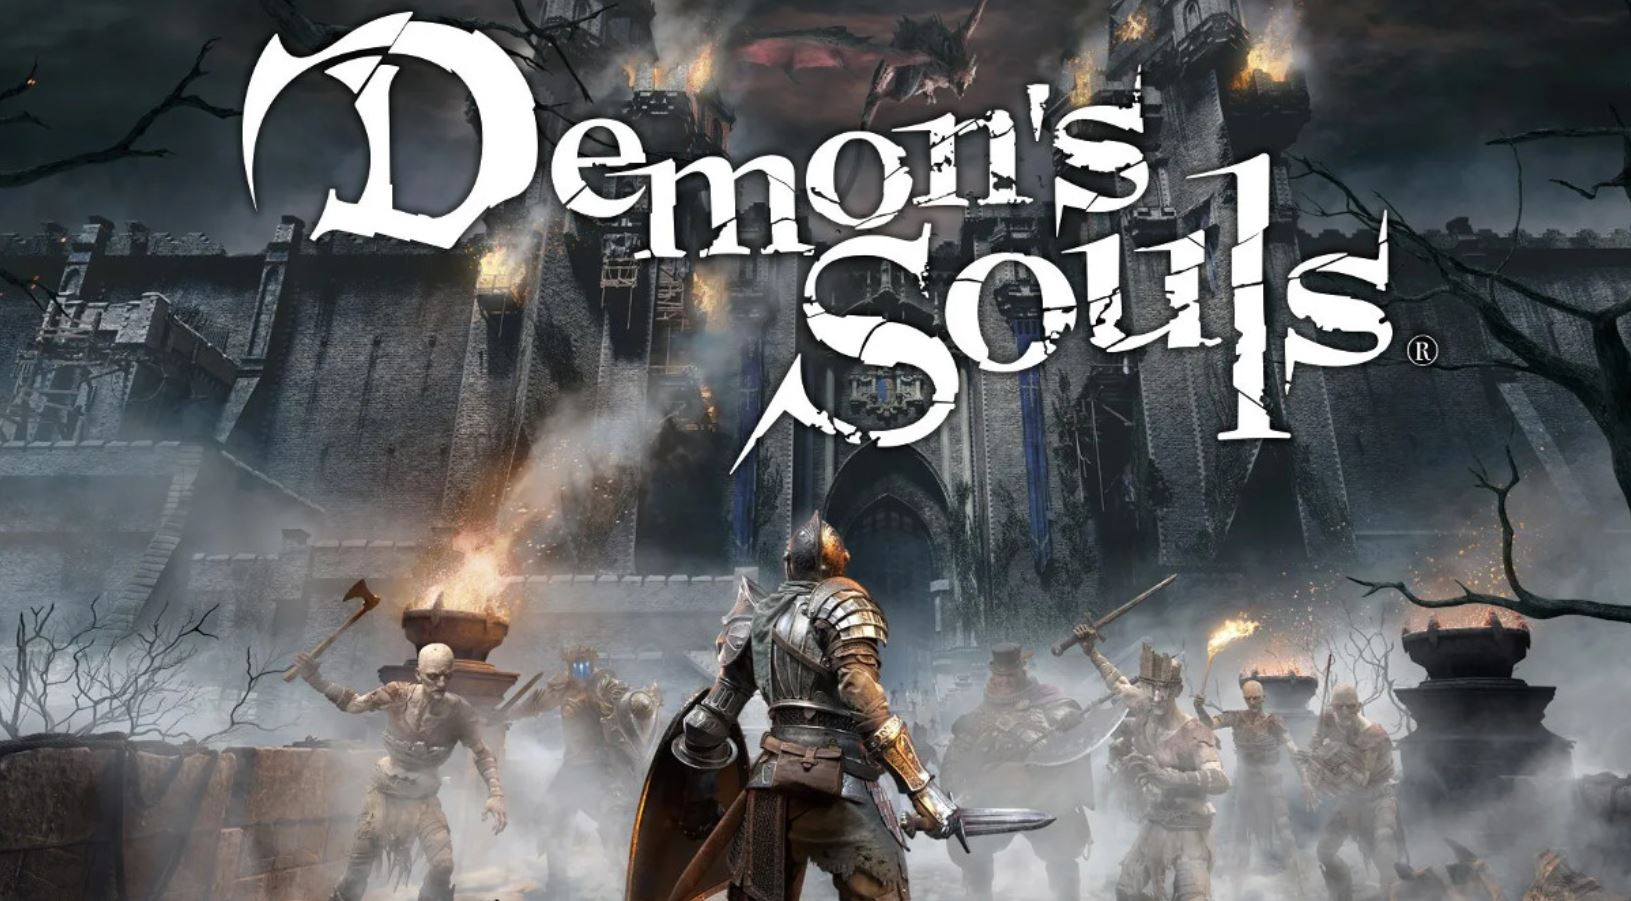 Demons-souls-remake-news-reviews-videos-1